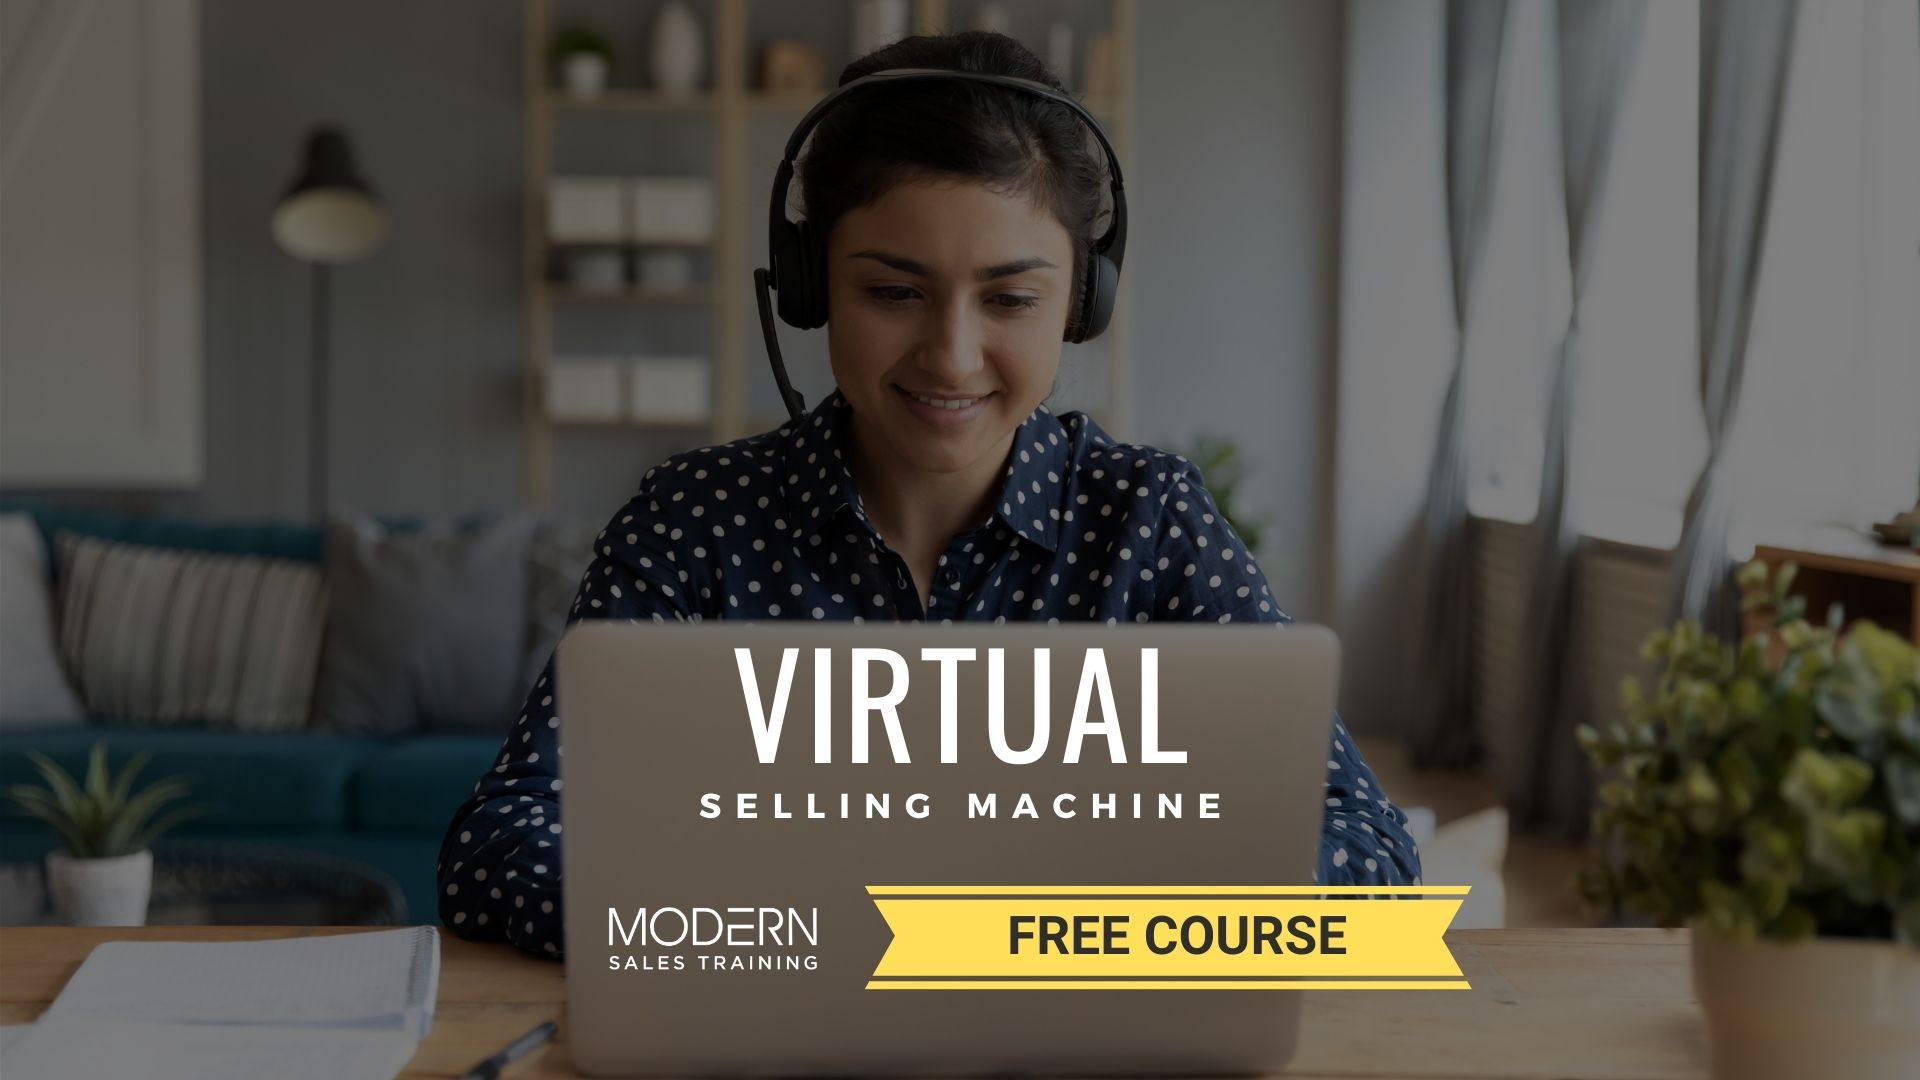 Virtual-Selling-Free-Sales-Course-Modern-Sales-Training